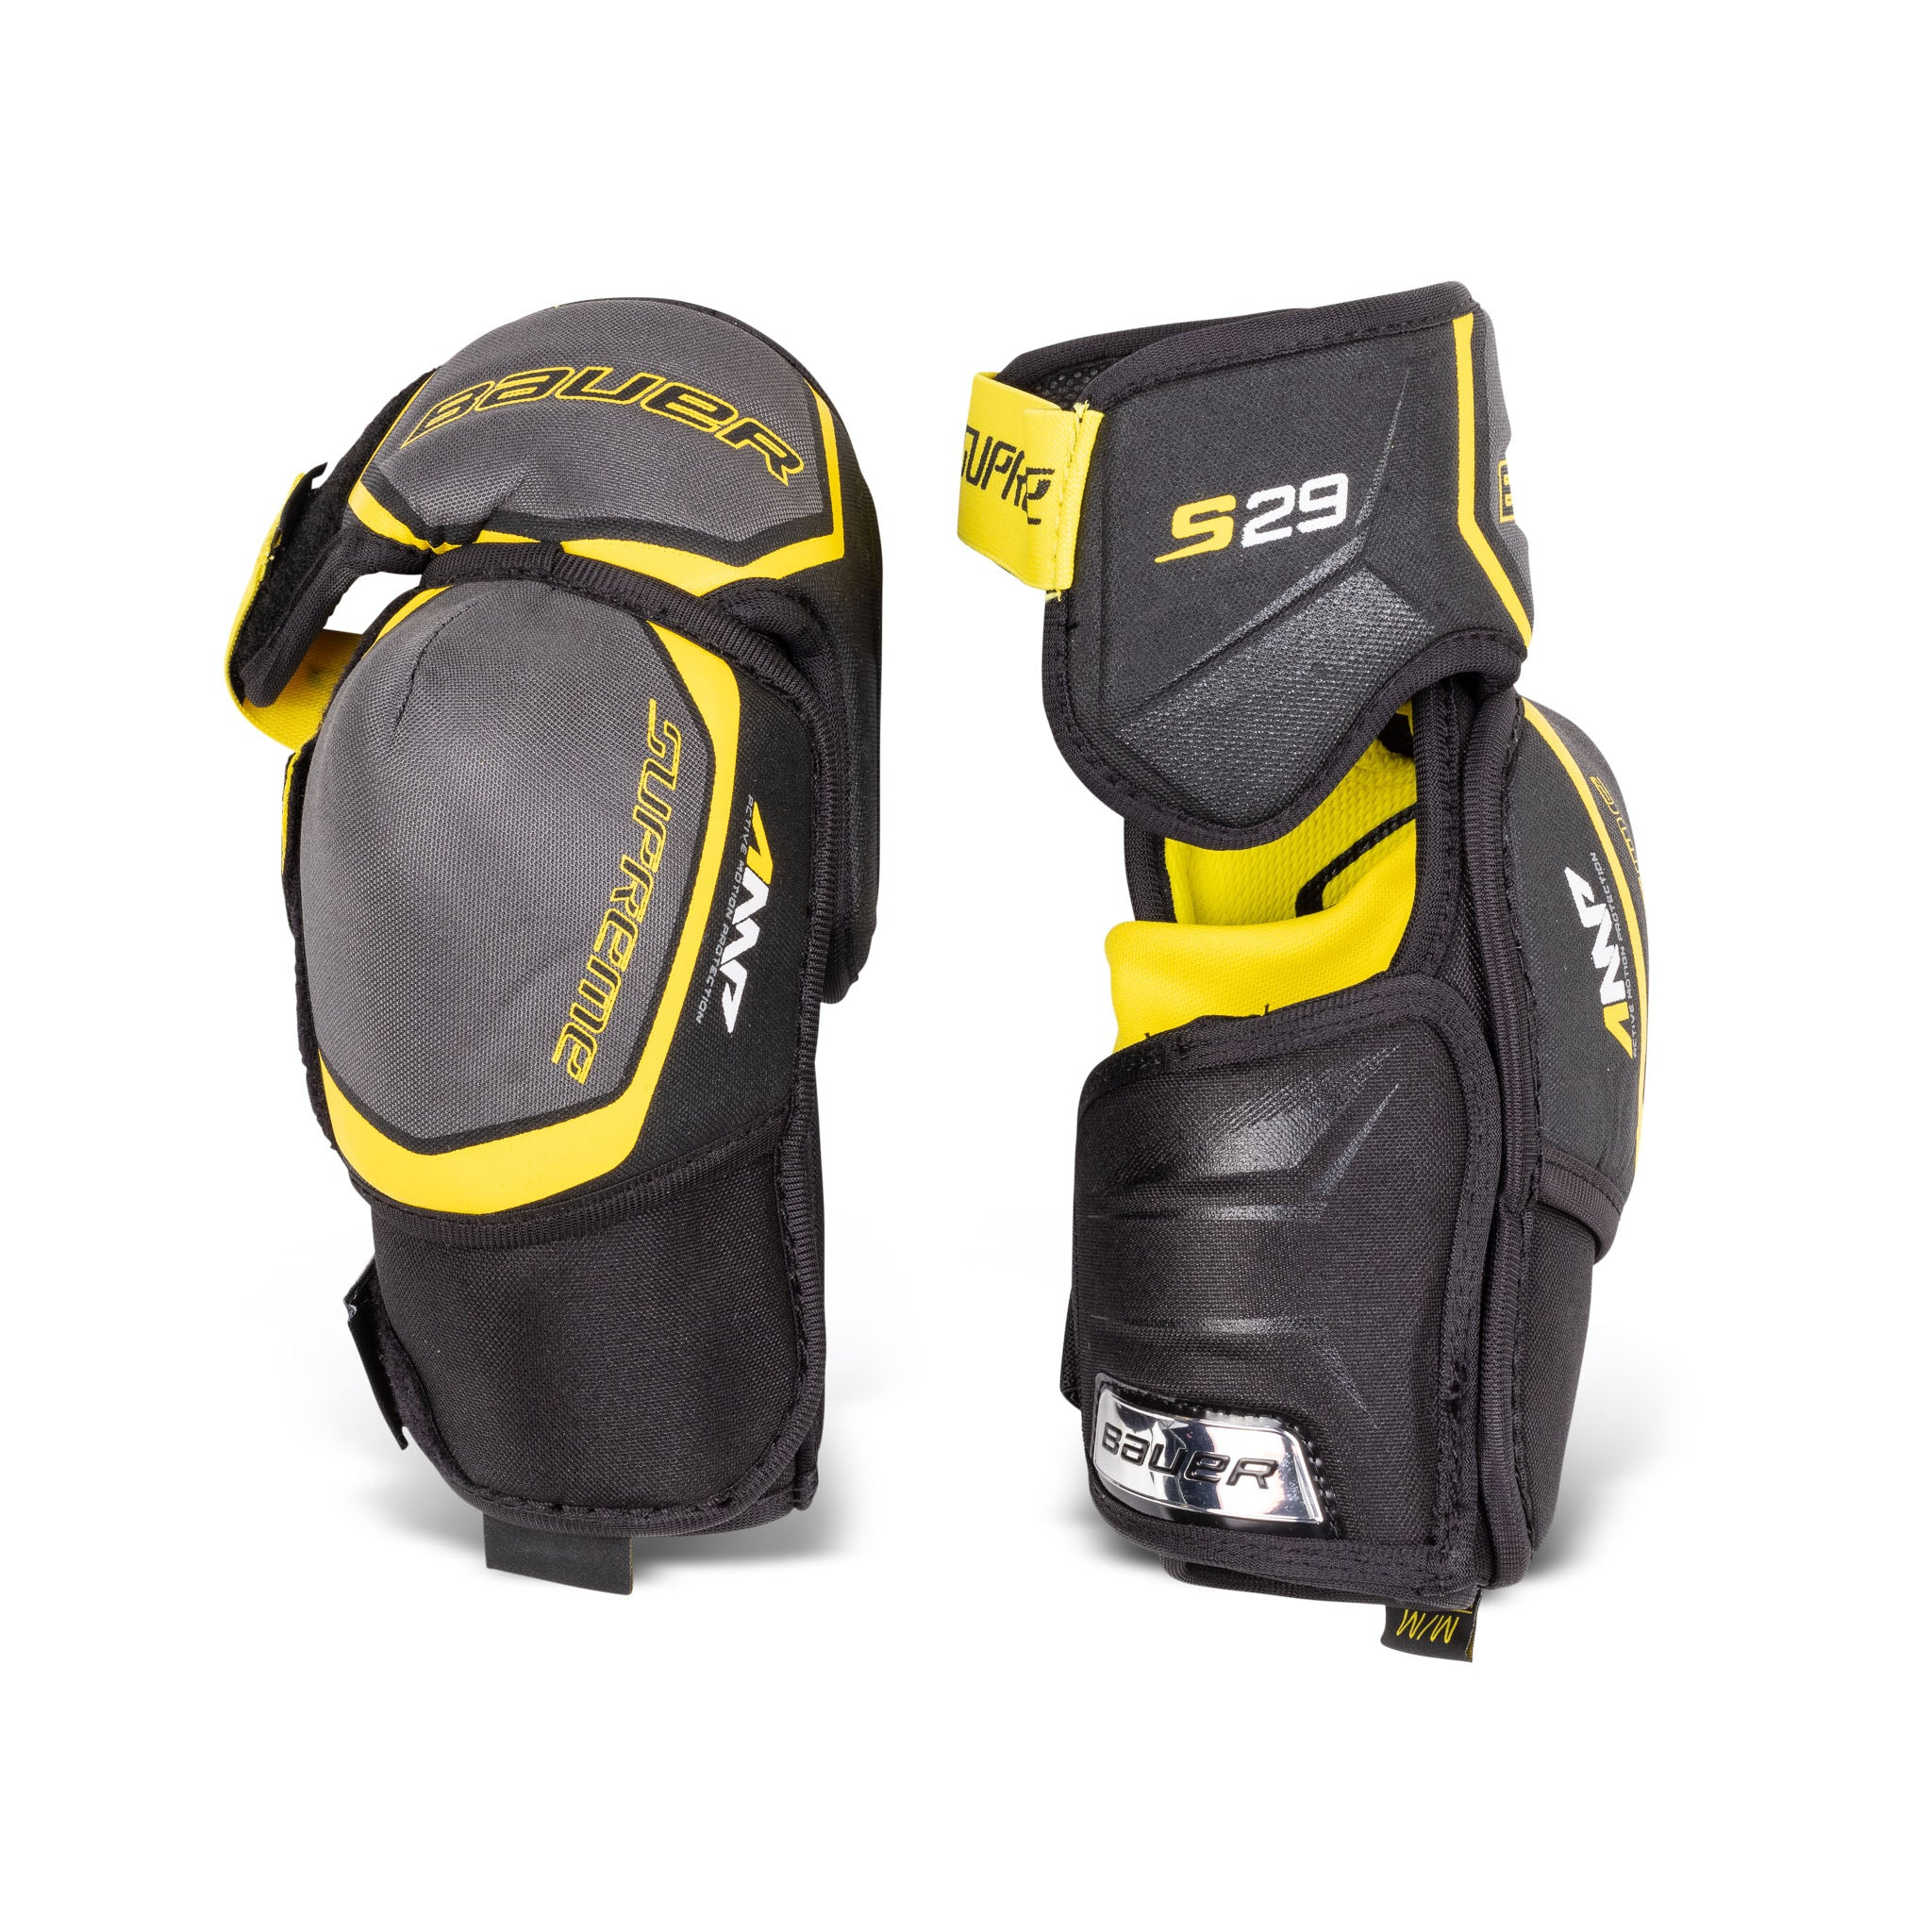 Bauer Supreme S29 Senior Hockey Elbow Pads